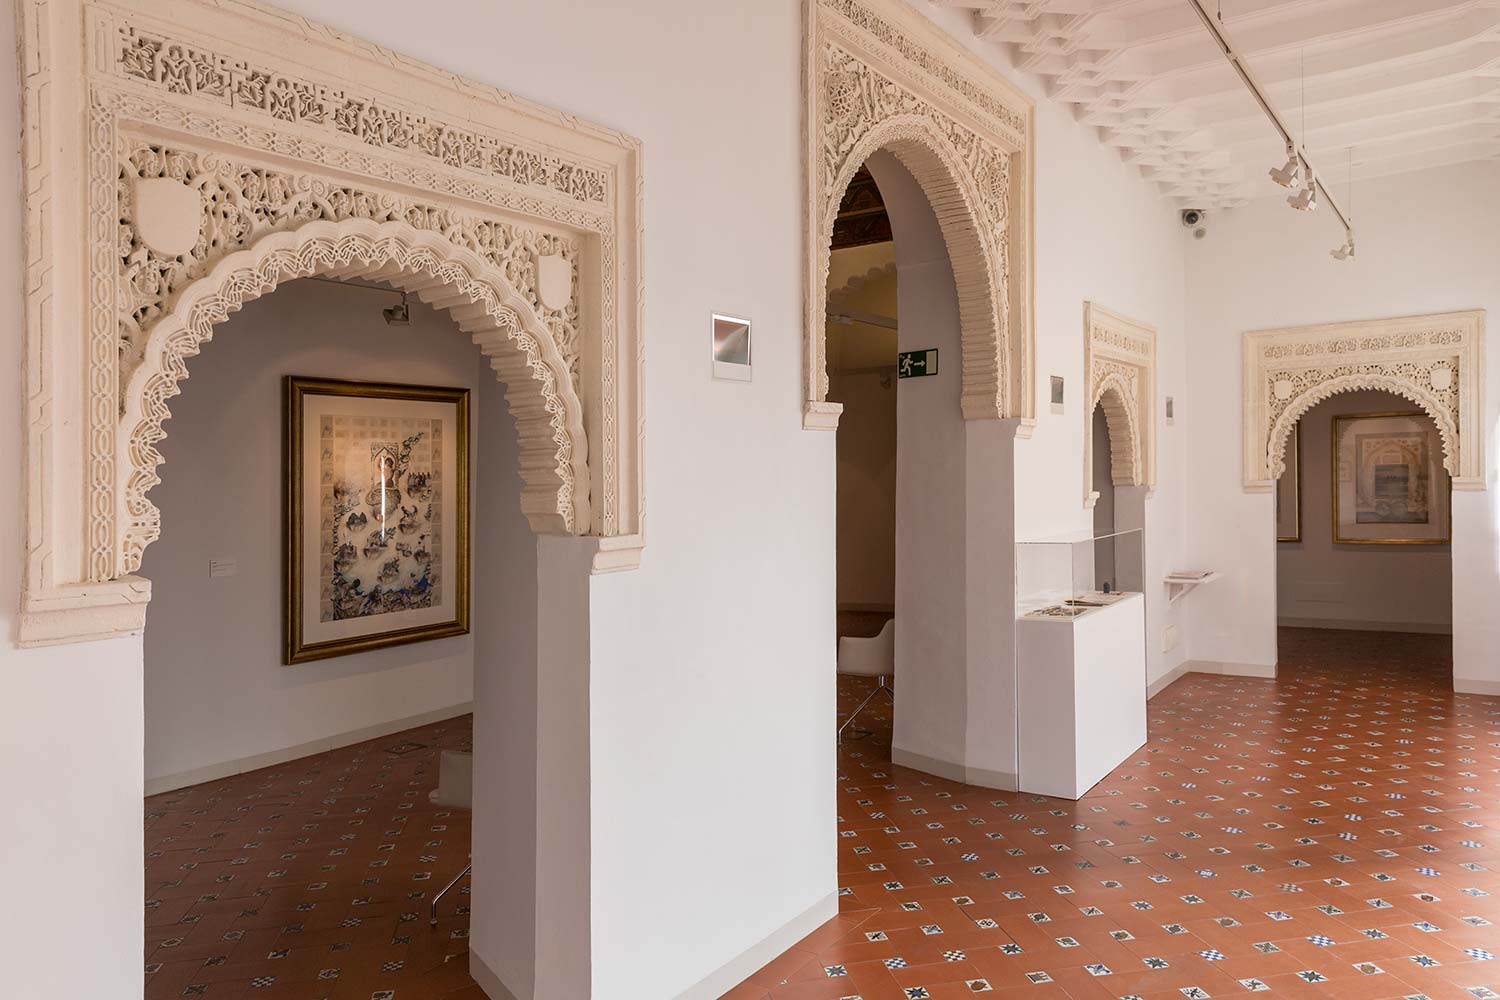 ELISABETH BOLZA Mixed Media Works 10th January - 1st March 2019 Casa Árabe, Cordoba